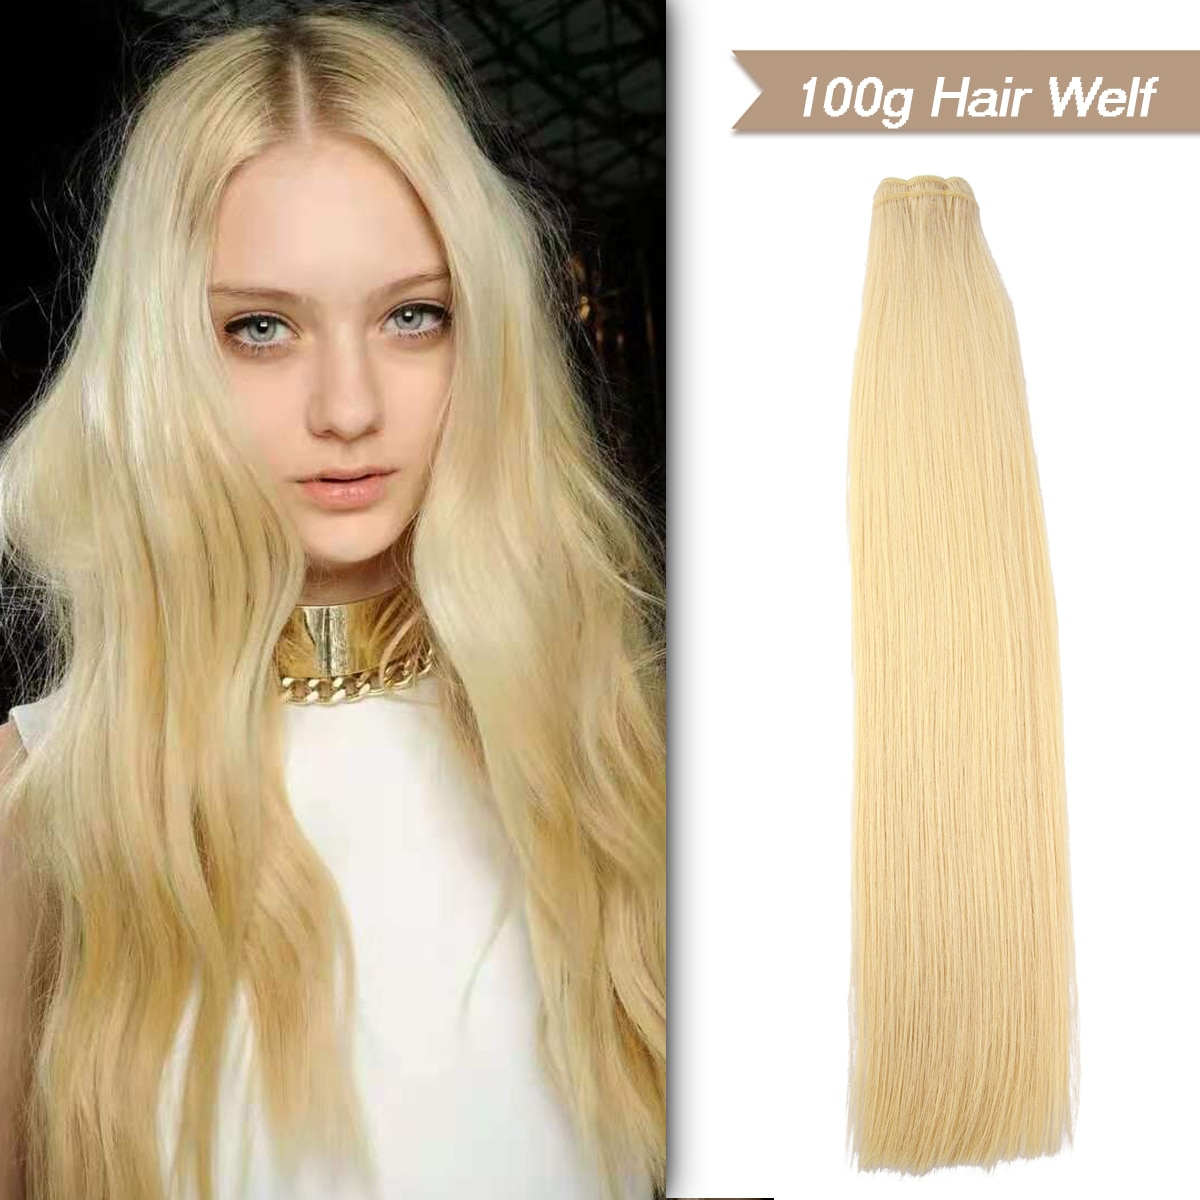 WIT Human Hair Extensions Straight European Remy Natural Hair Weft 20